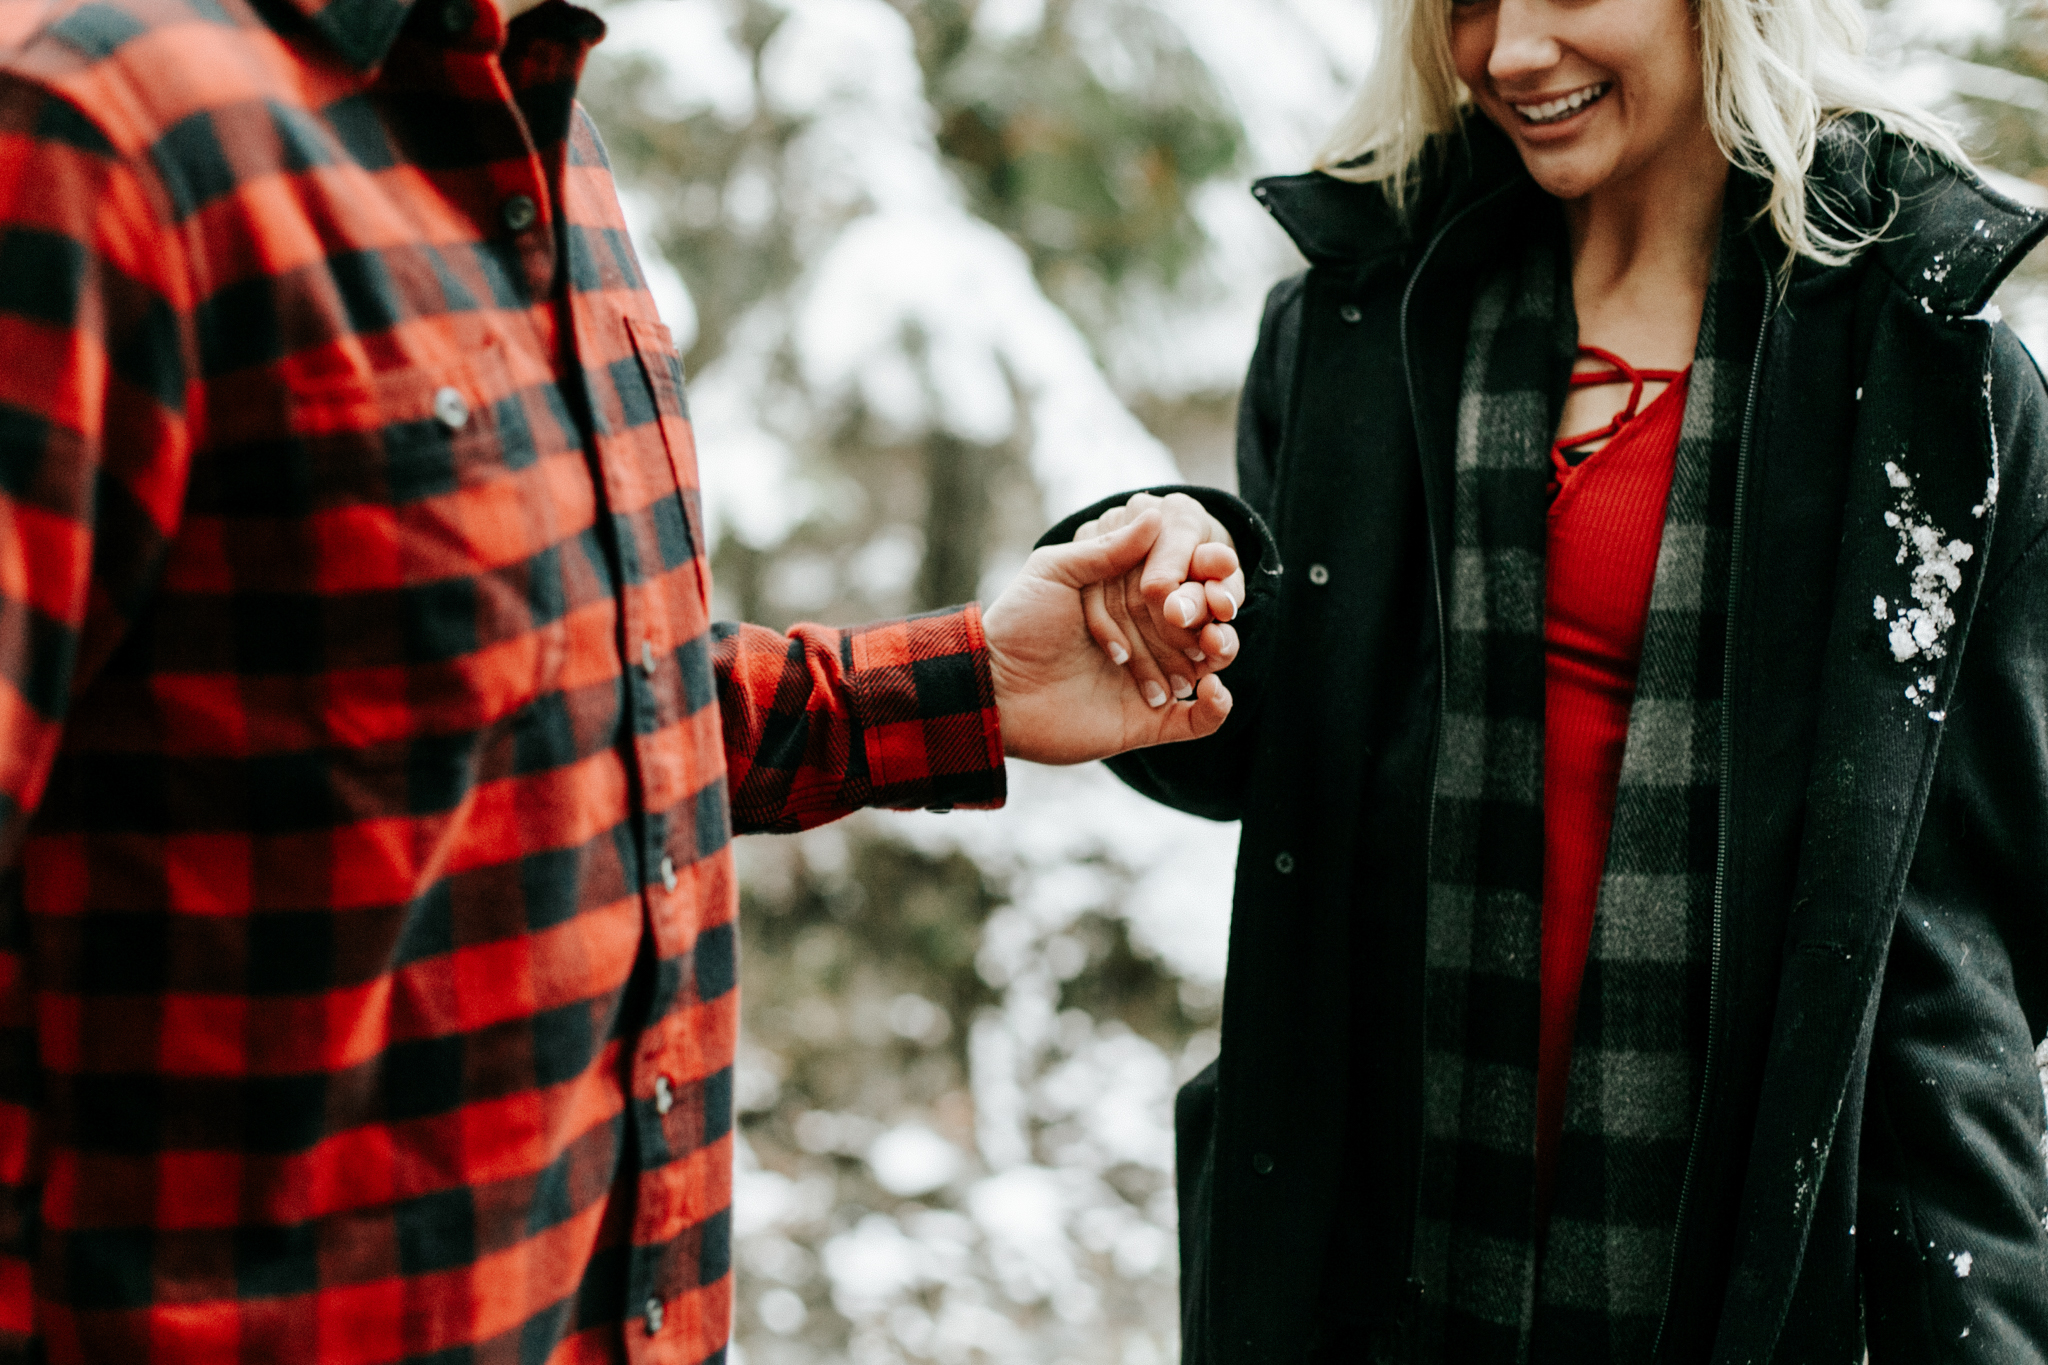 love-and-be-loved-photography-mountain-engagement-ashlyn-rob-perfect-fit-4-u-photo-image-picture-48.jpg